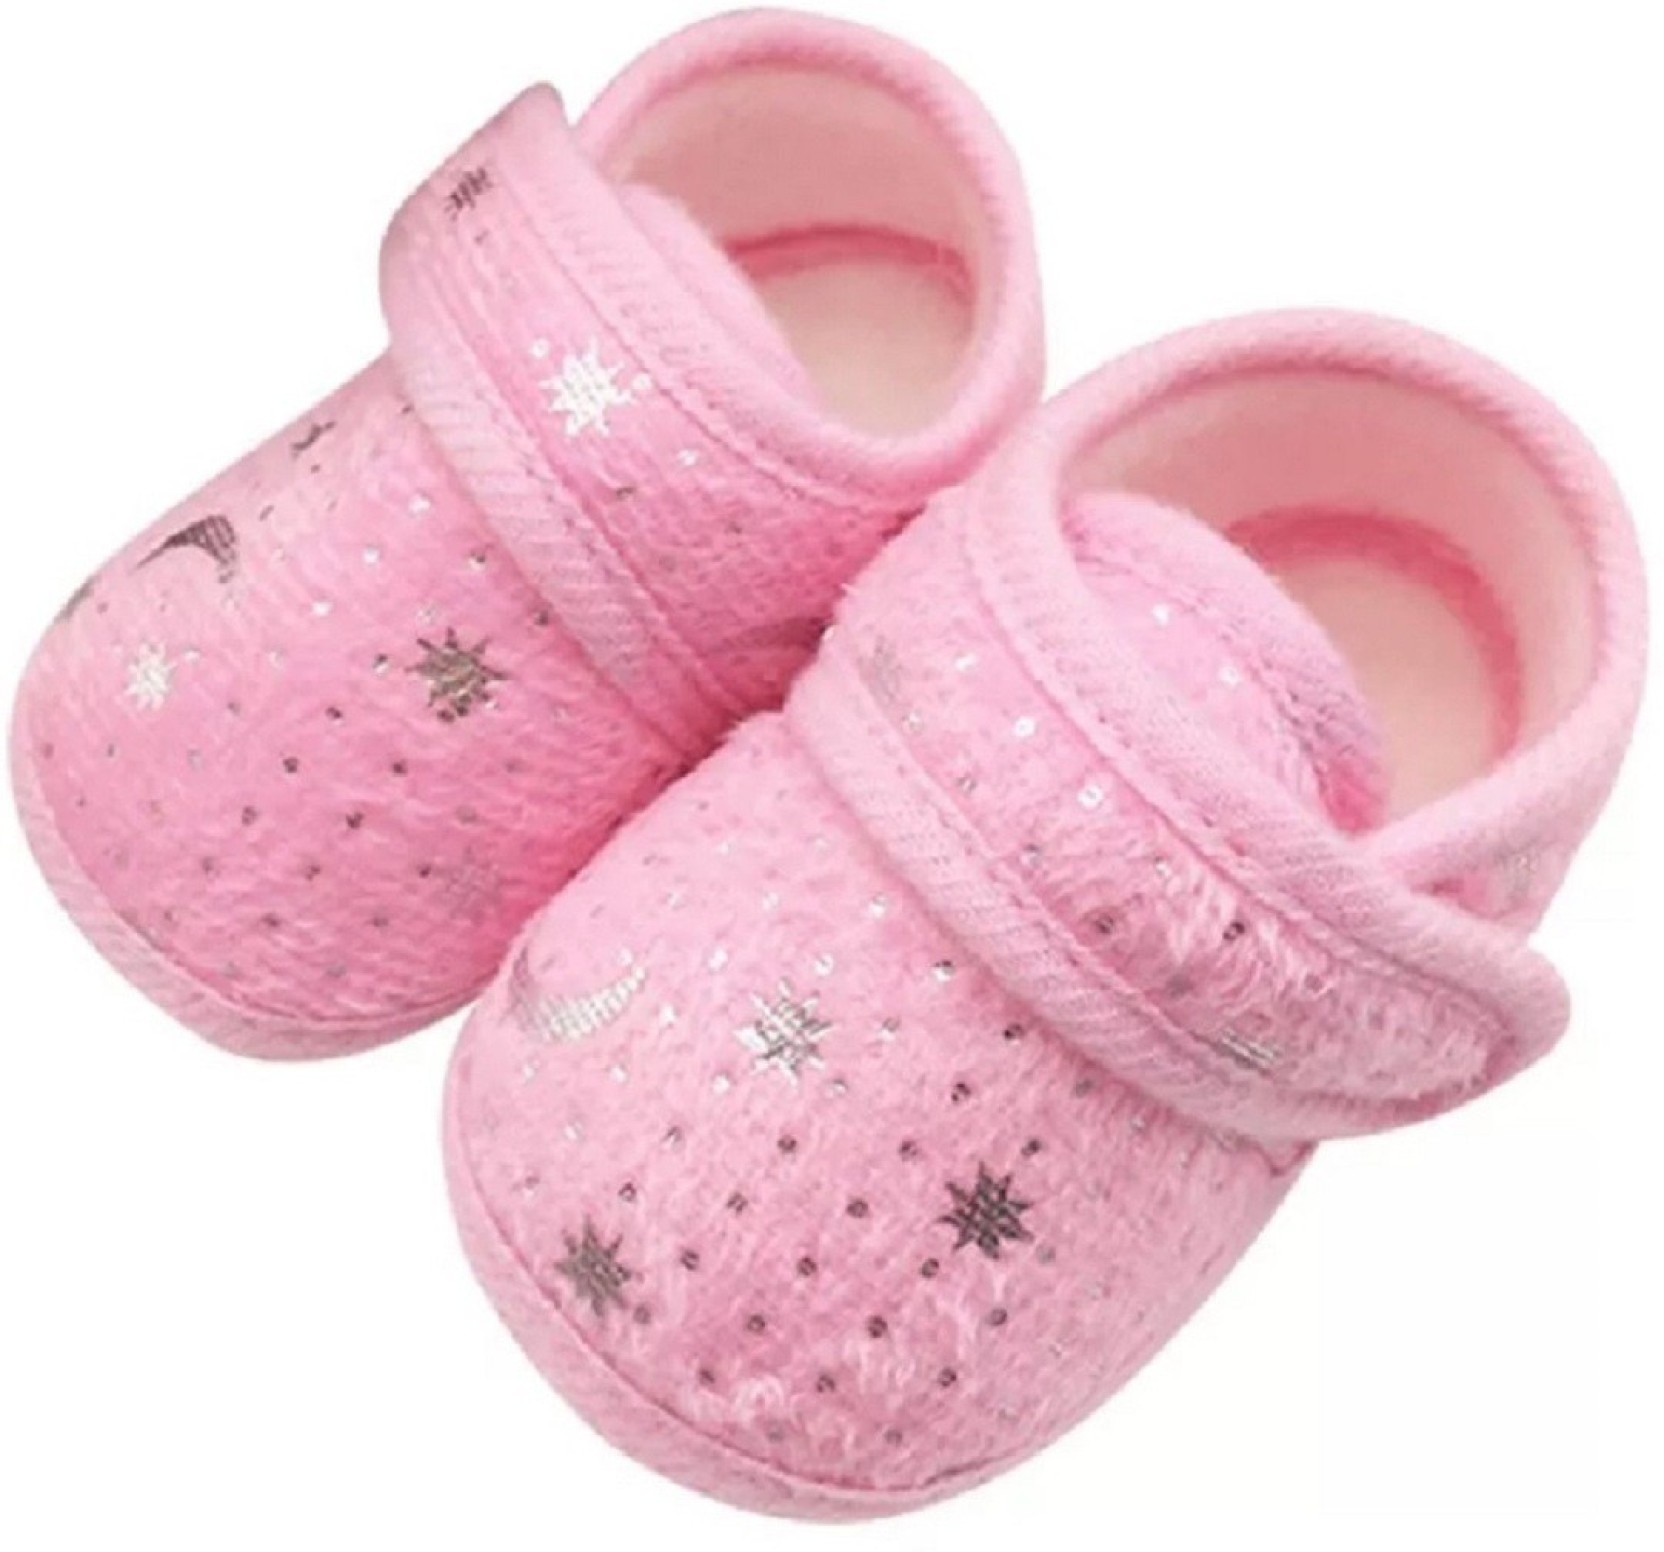 9e40b9ce3d4da6 Ziory Pink Toddler Soft Sole Crib Bling Sequins Shoes Belly Prewalker  Firstwalker Sandals for baby girls Booties (Toe to Heel Length - 12 cm Pink)